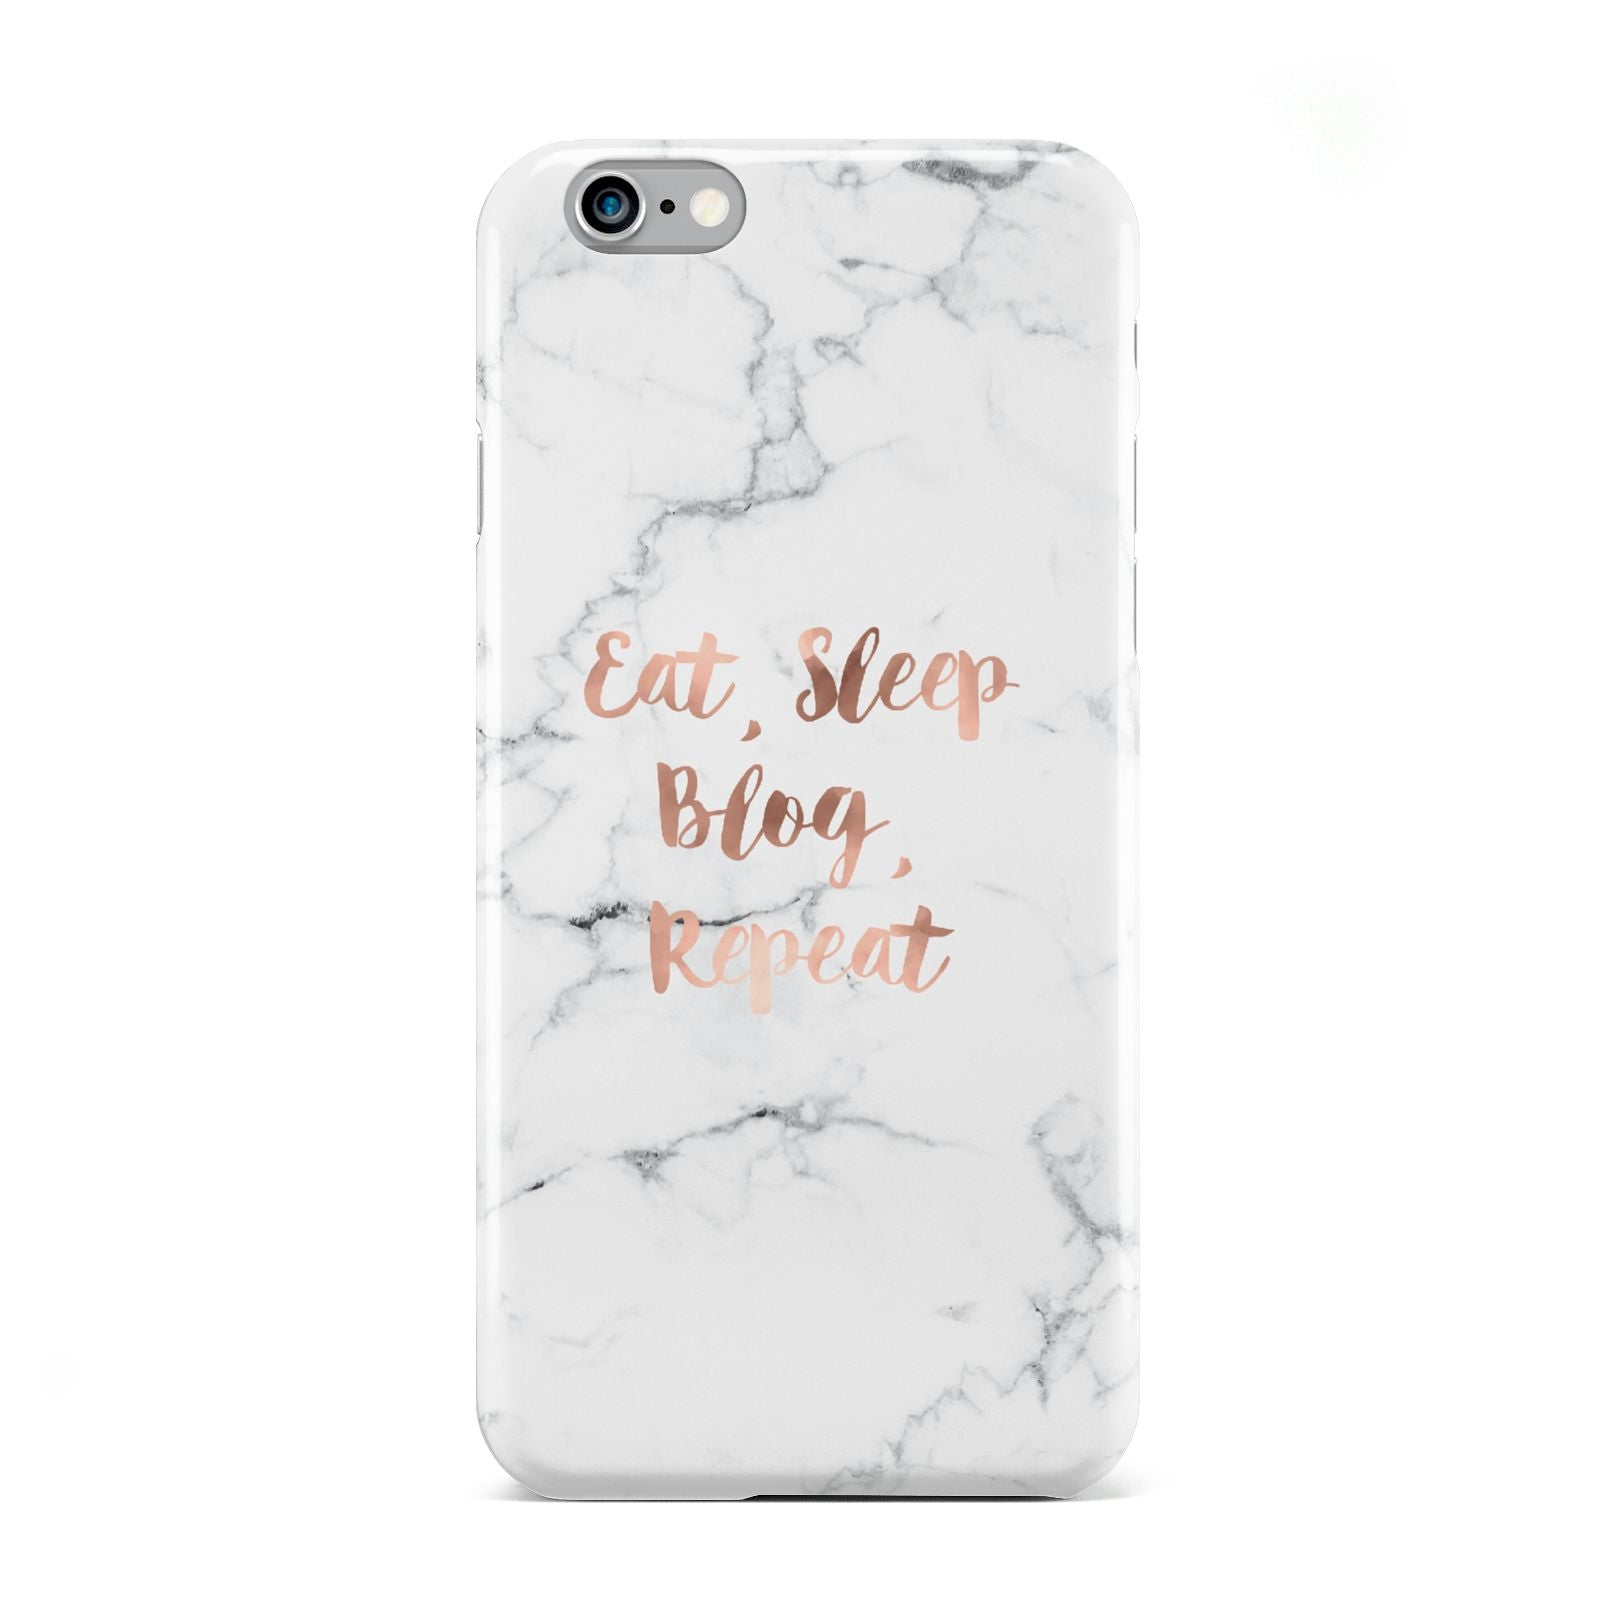 Eat Sleep Blog Repeat Marble Effect Apple iPhone 6 Case